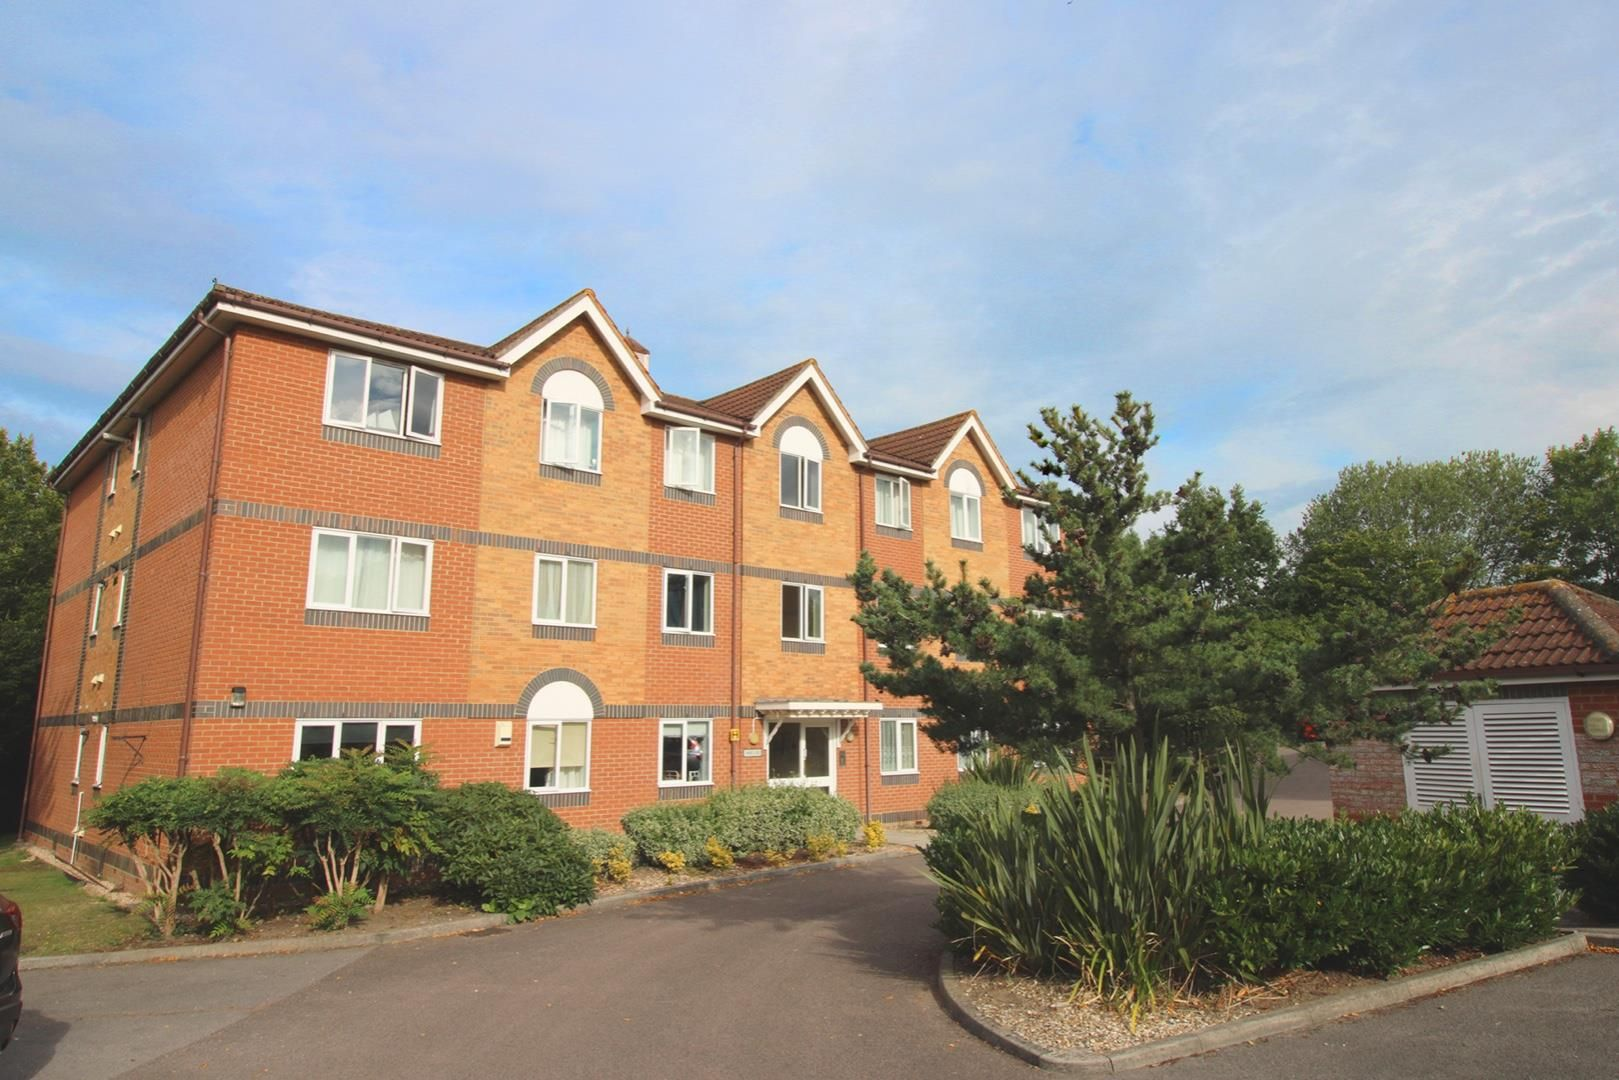 2 bed apartment for sale, RG42